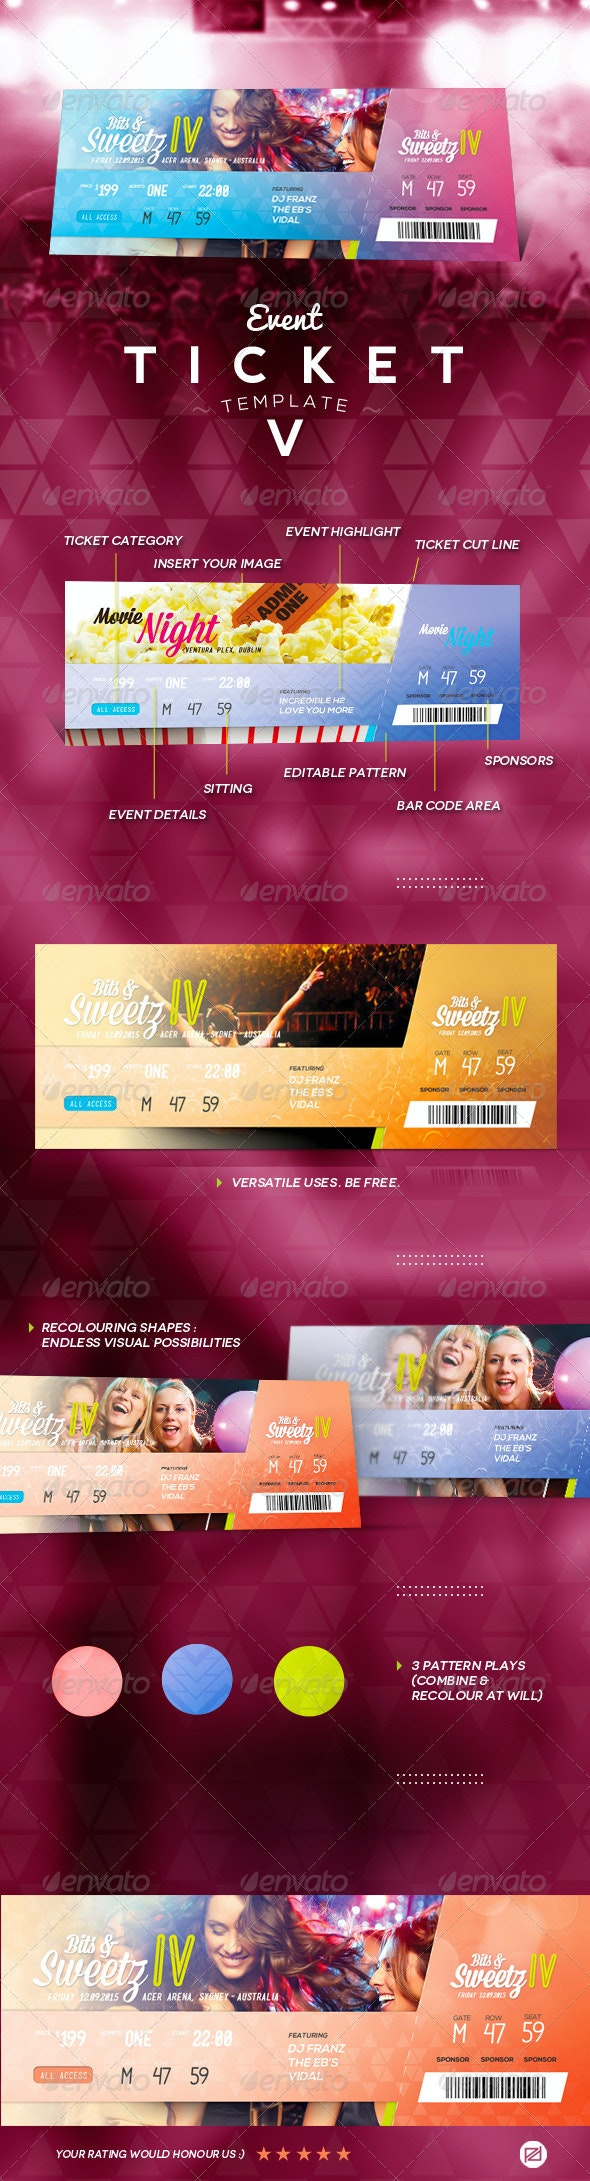 Event Ticket Template V - Miscellaneous Print Templates